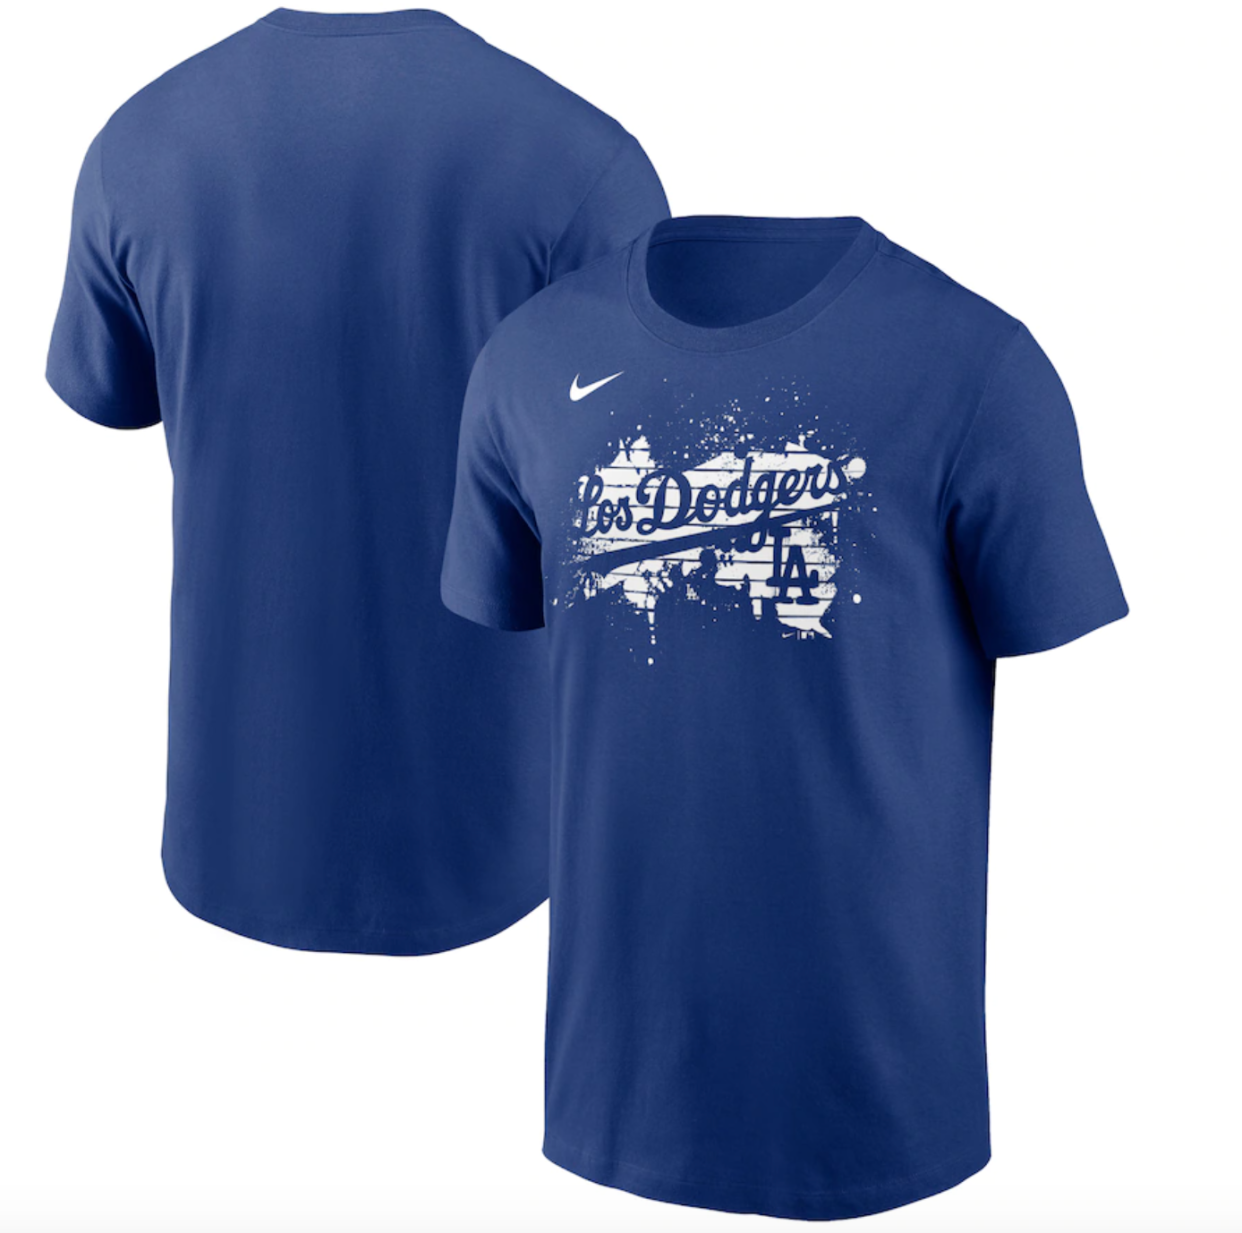 Dodgers Nike 2021 City Connect Graphic T-Shirt